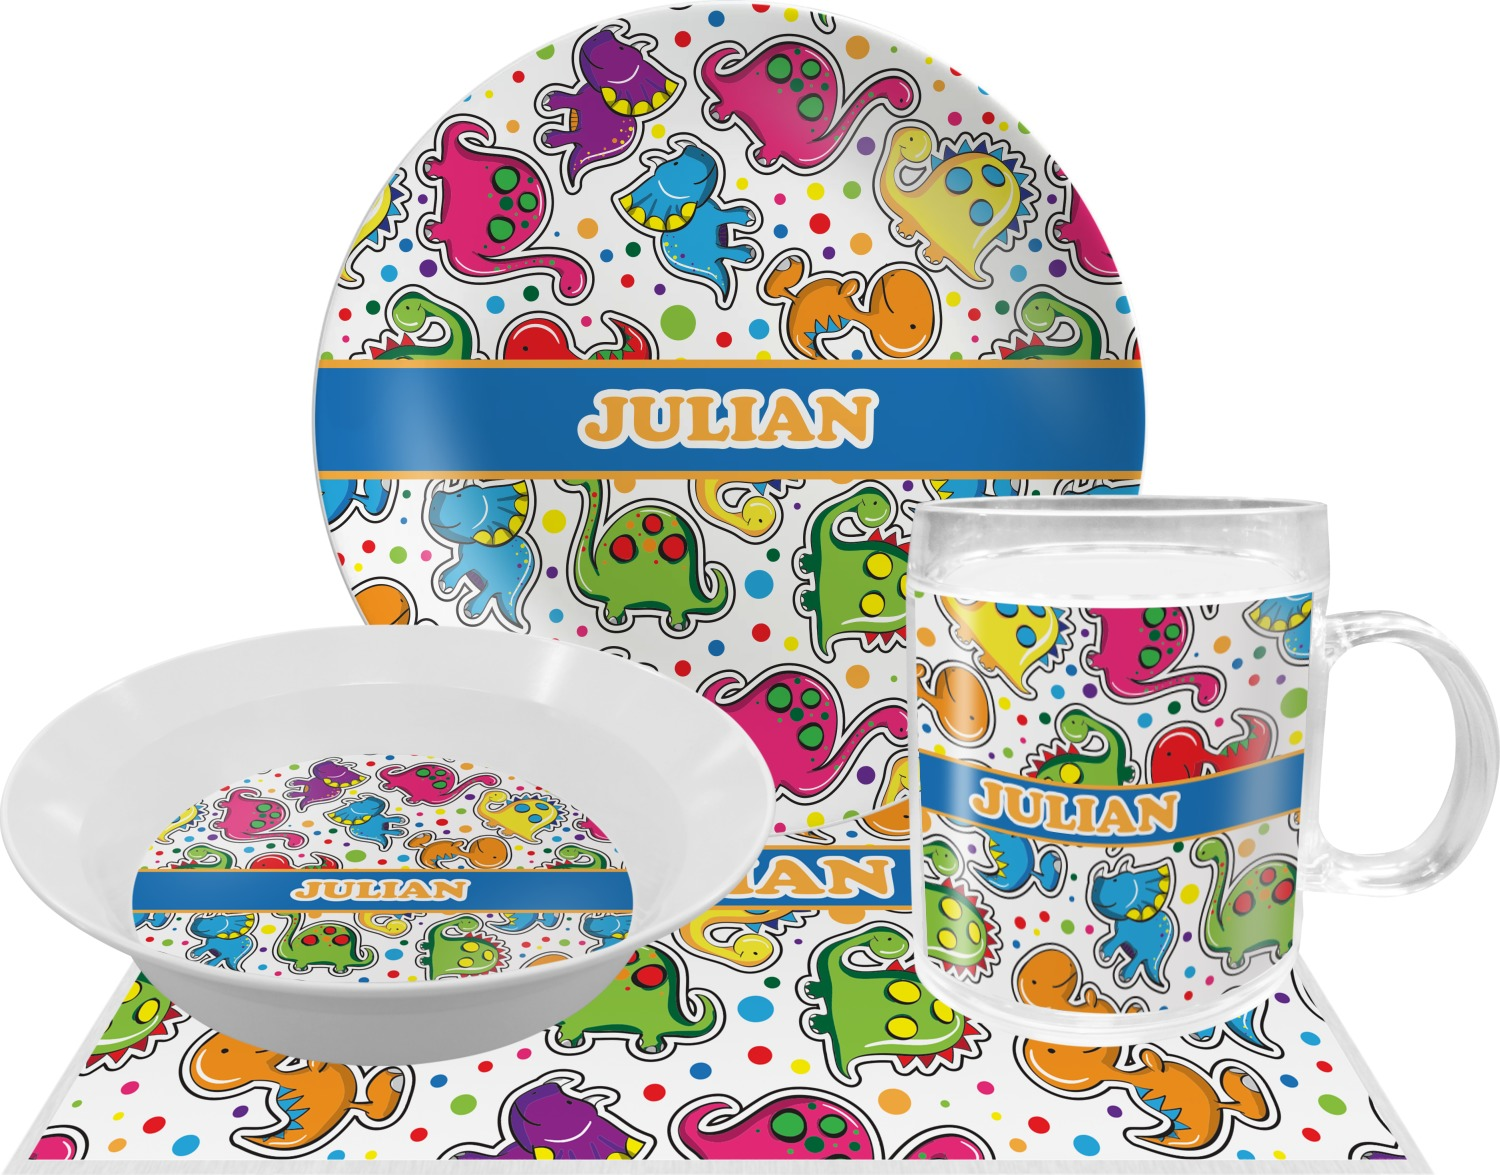 Dinosaur Print Dinner Set - 4 Pc (Personalized)  sc 1 st  Potty Training Concepts & Dinosaur Print Dinner Set - 4 Pc (Personalized) - YouCustomizeIt